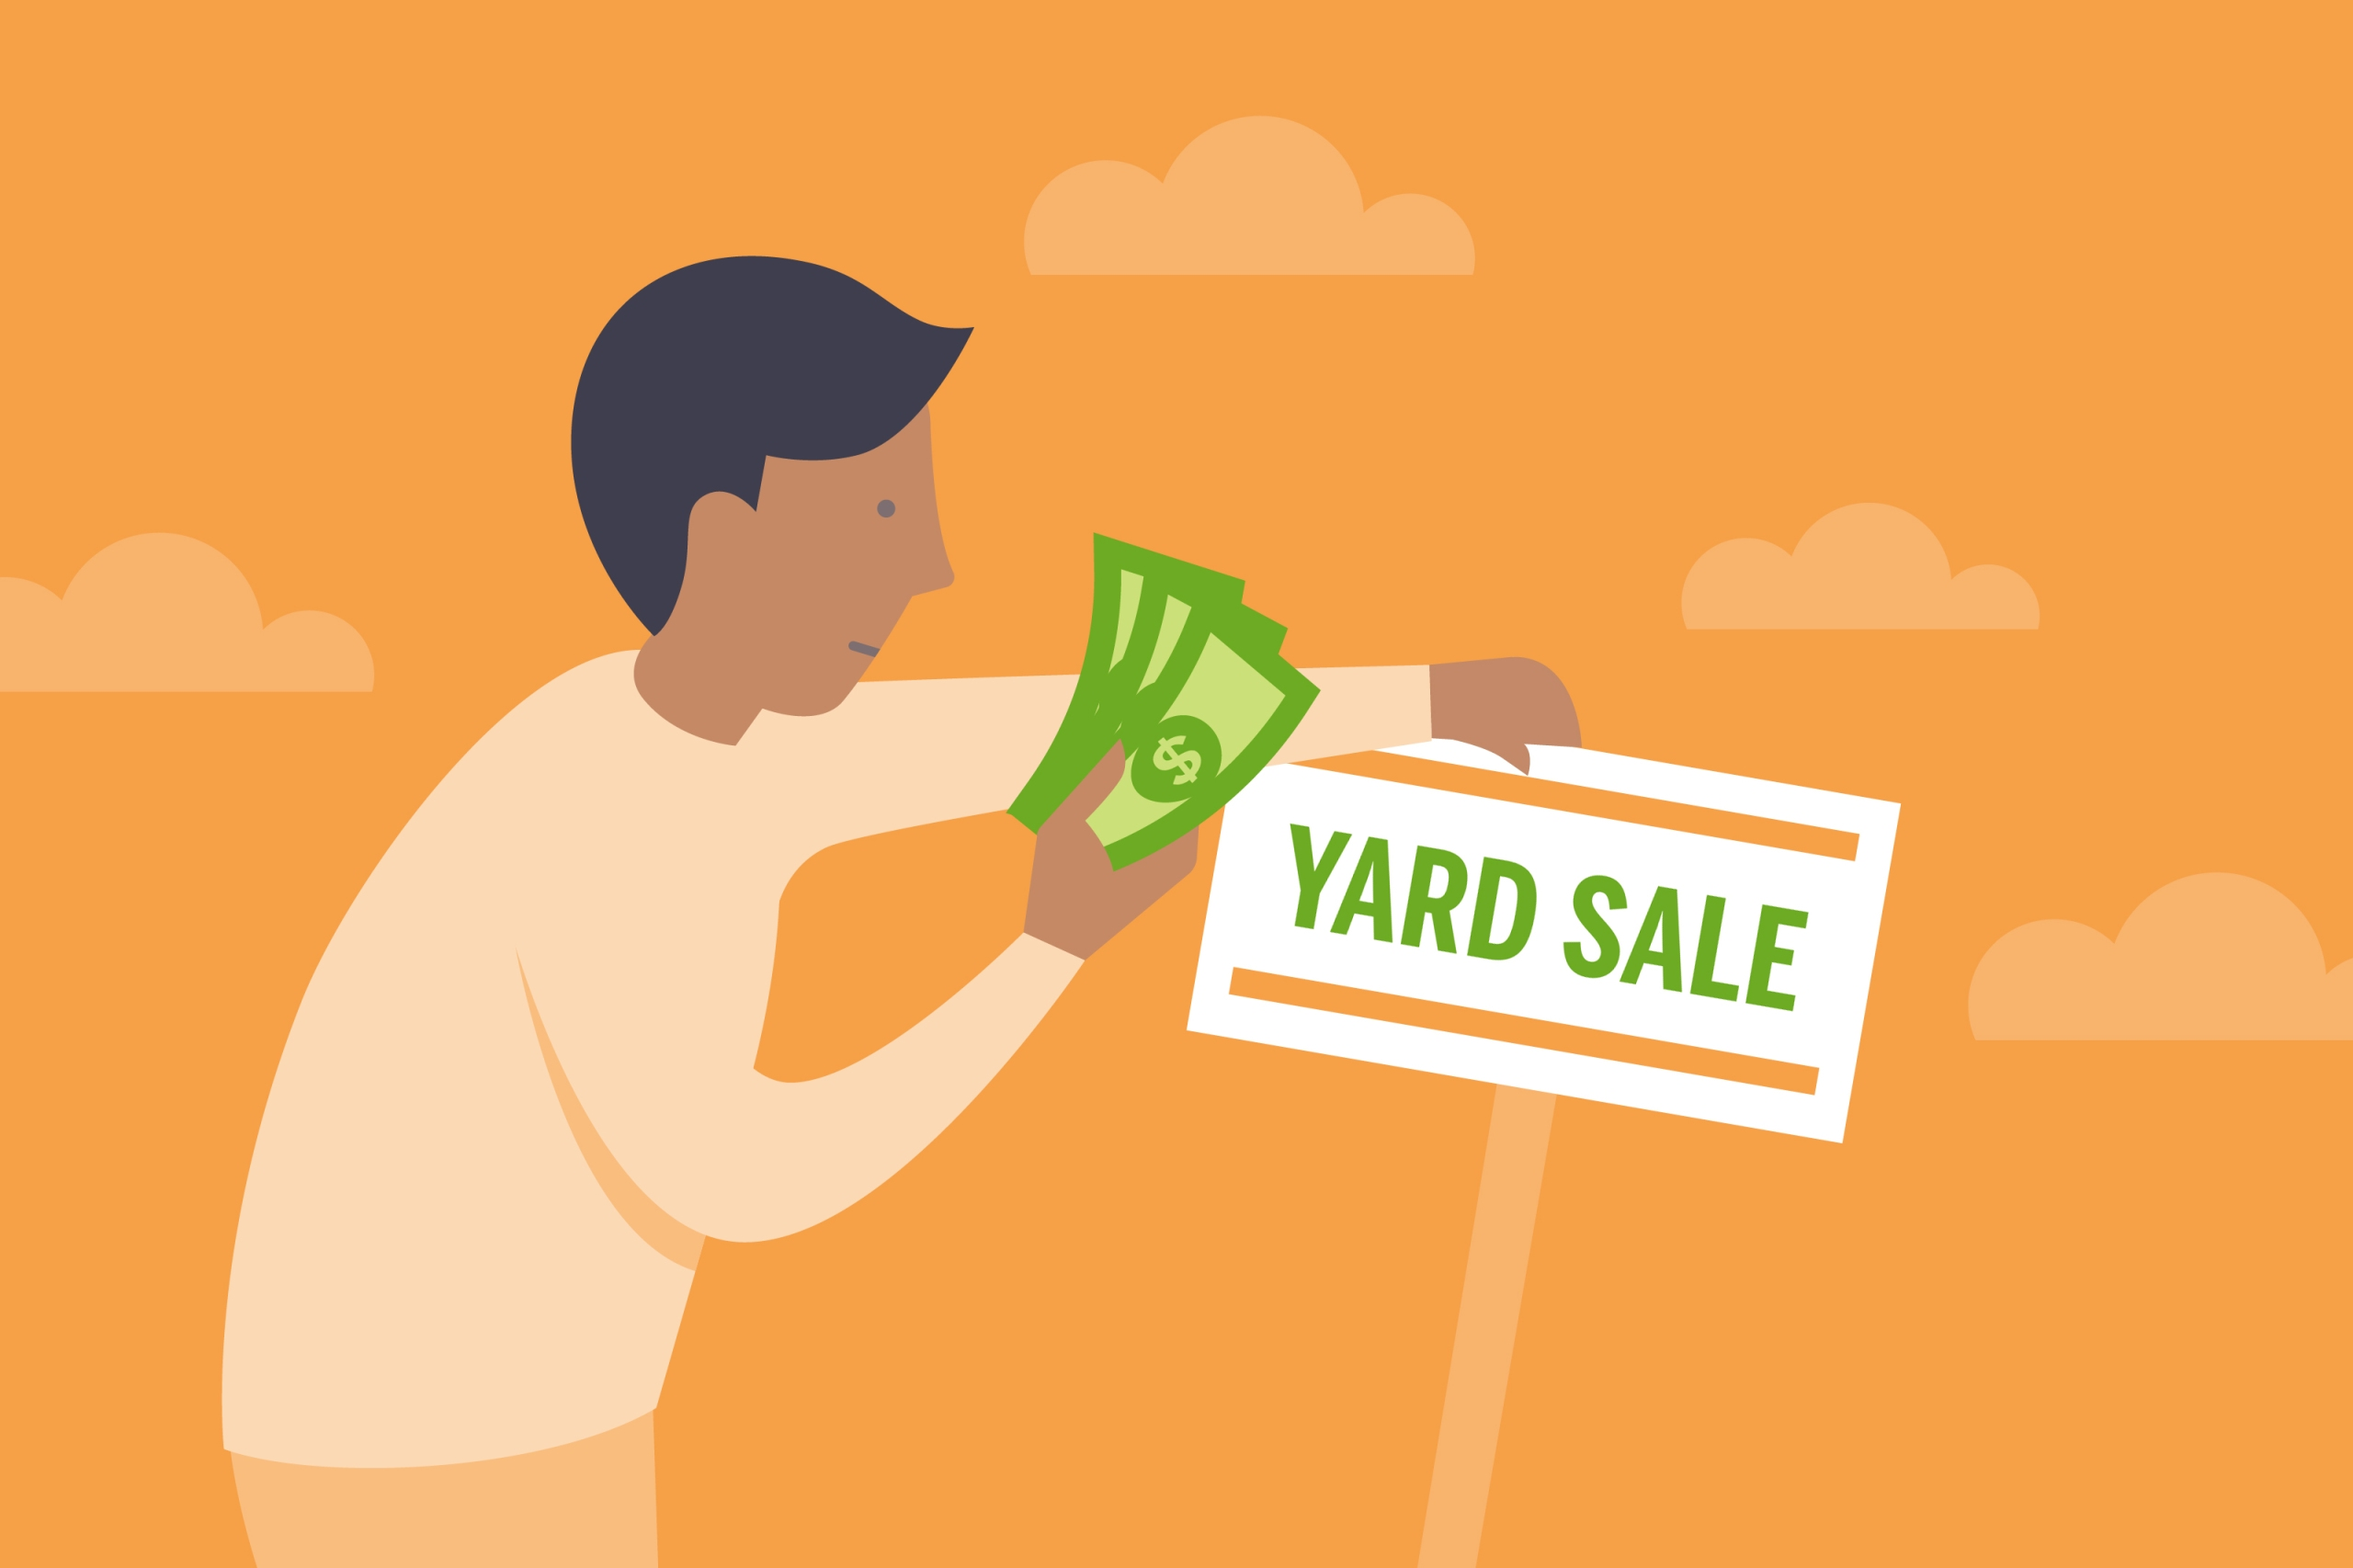 Illustration of man with a yard sale sign